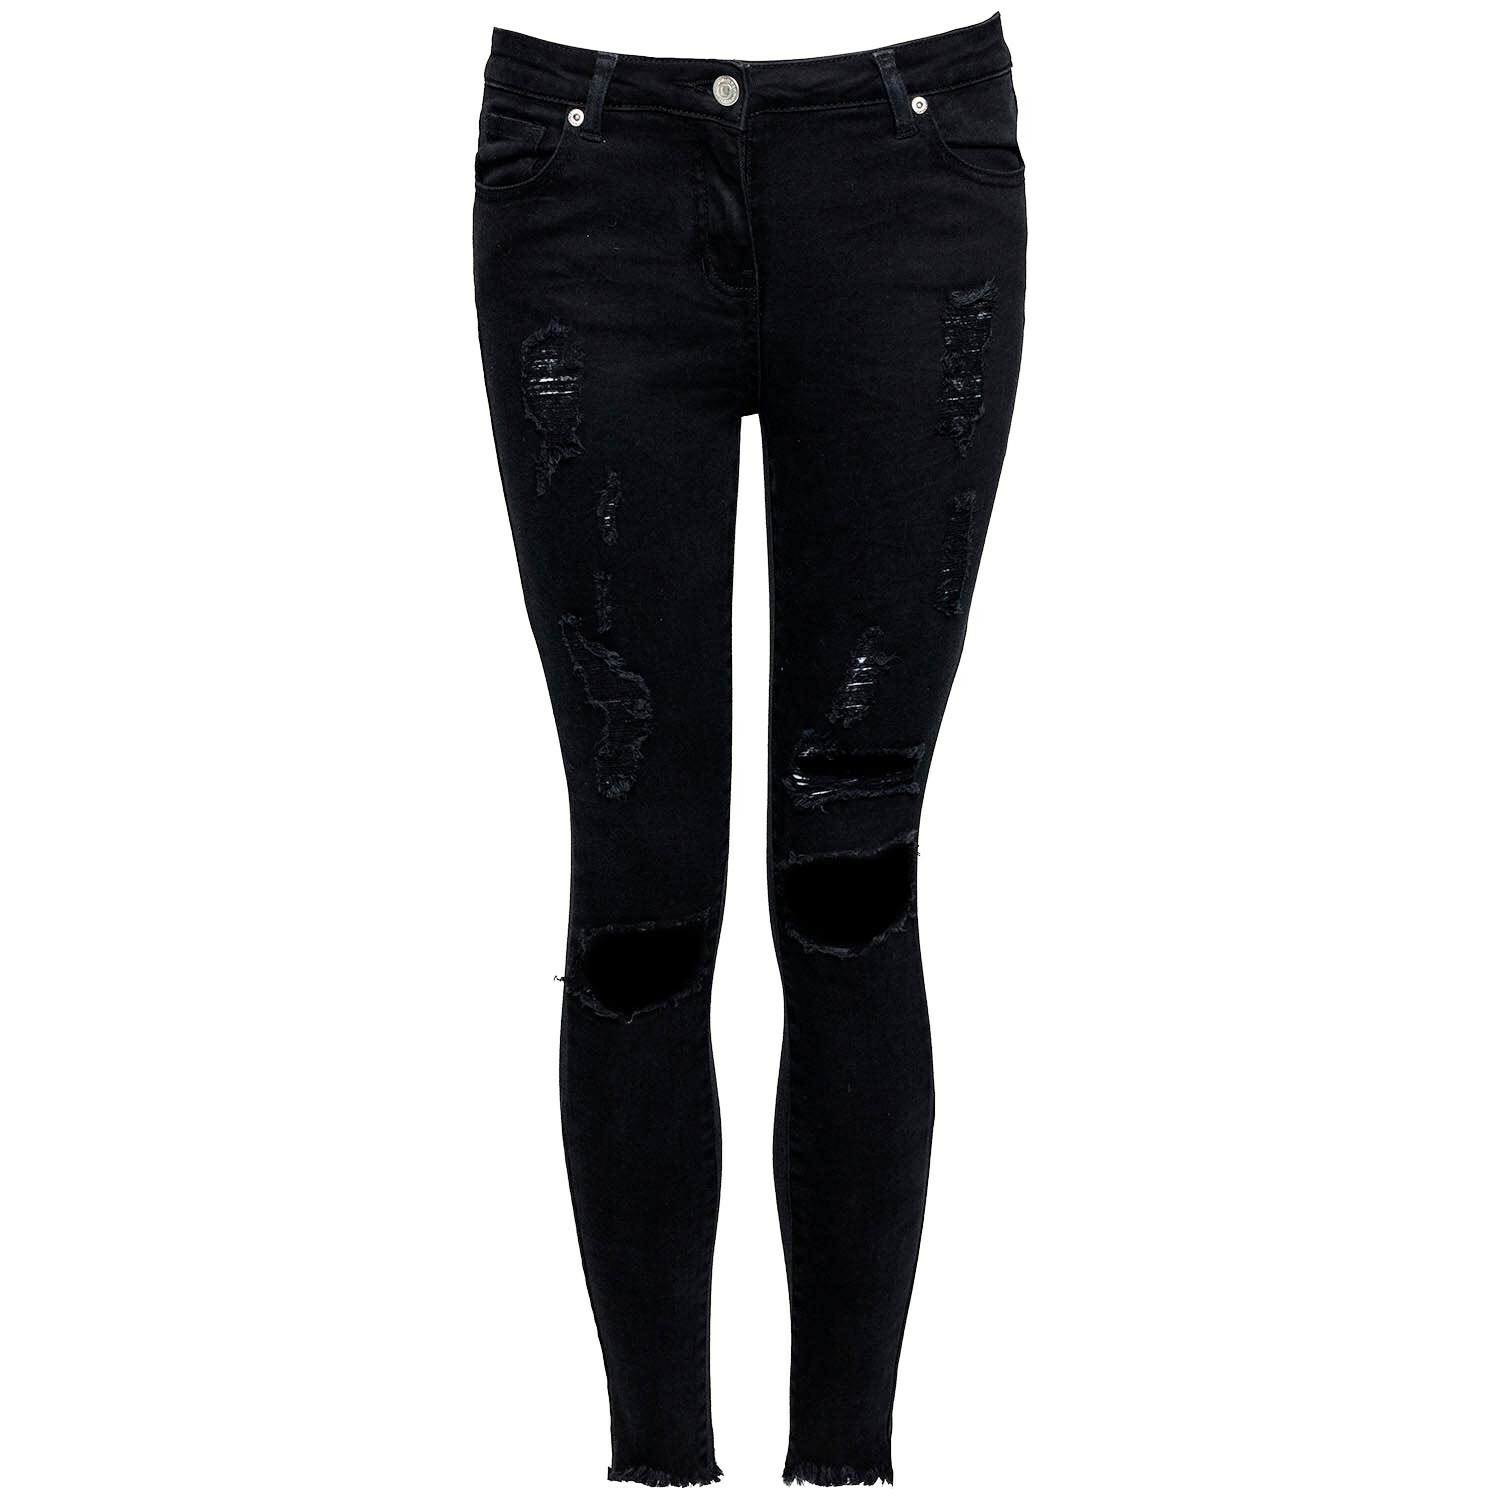 FEELING EDGY JEANS